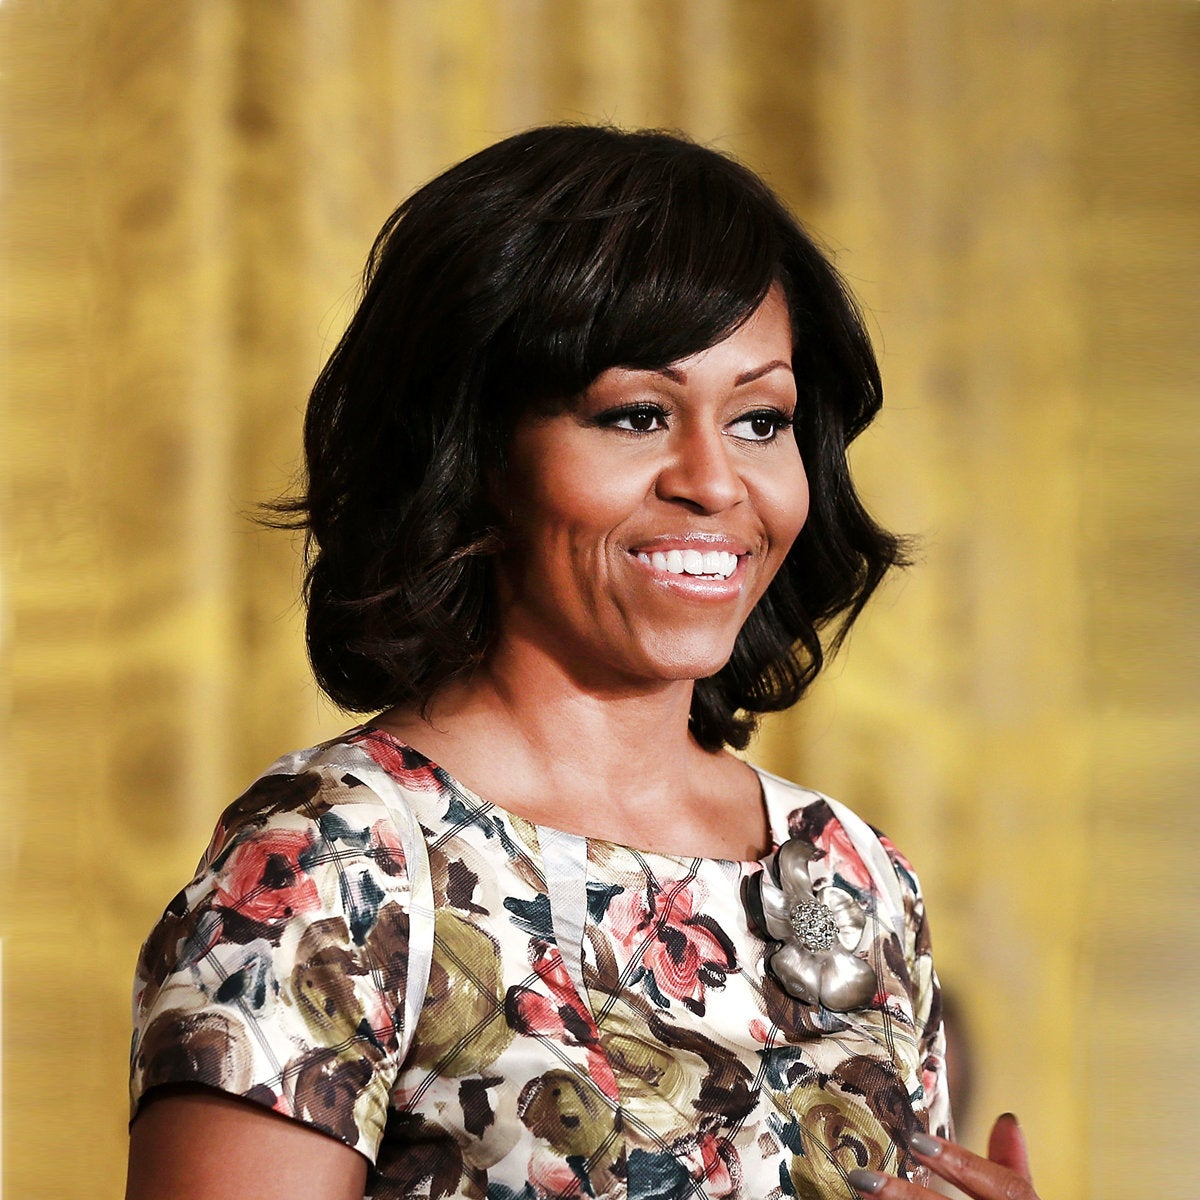 Michelle Obama Honors Cicely Tyson at 'Trip to Bountiful' White House Screening